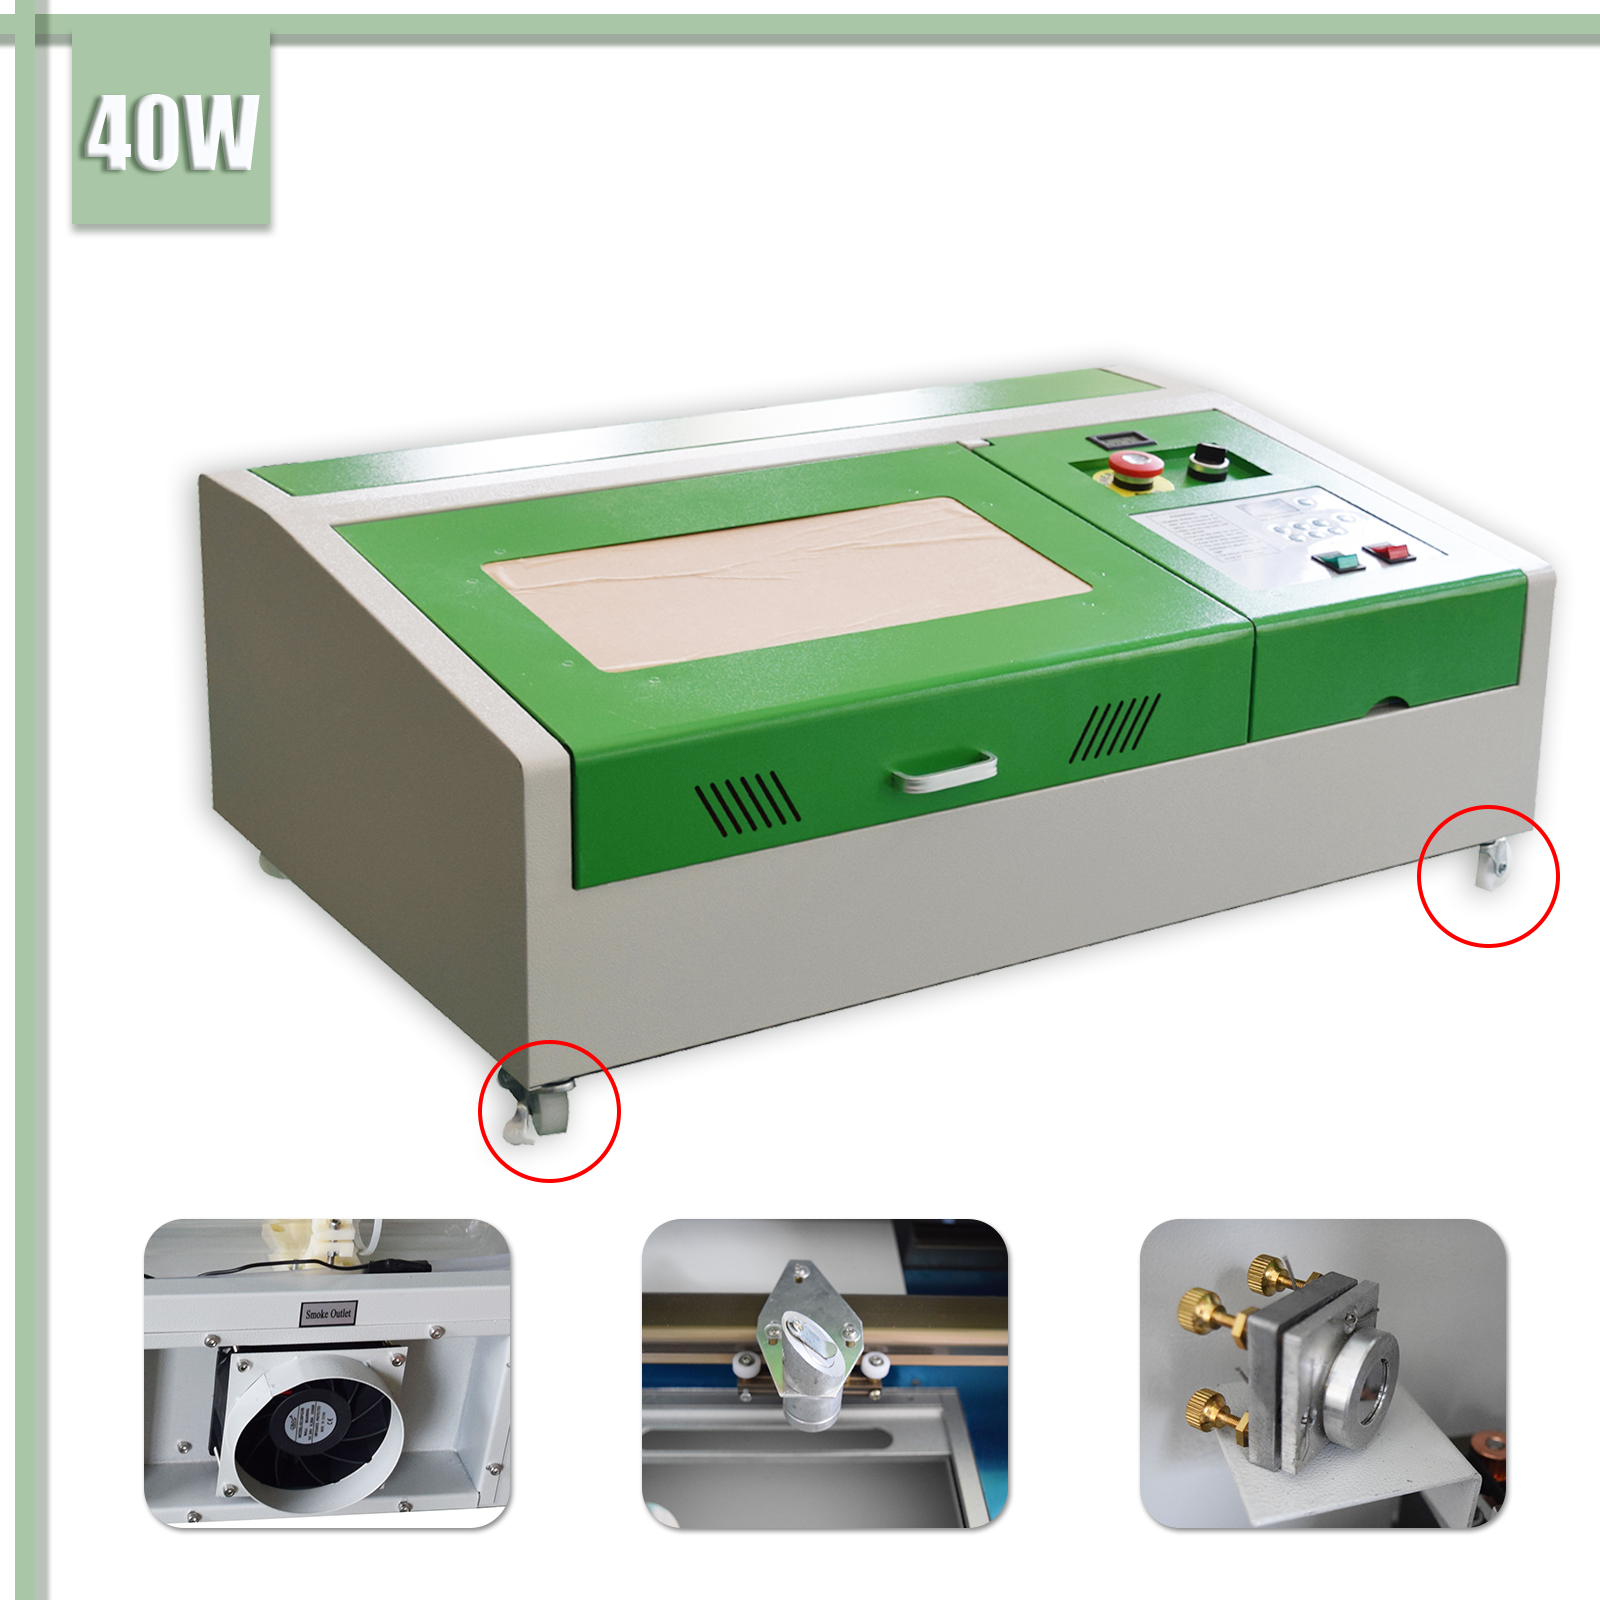 New USB 300x200mm 40W CO2 Laser Maschine Schneiden Maschine Laser Gravur Maschine + 4 rounds